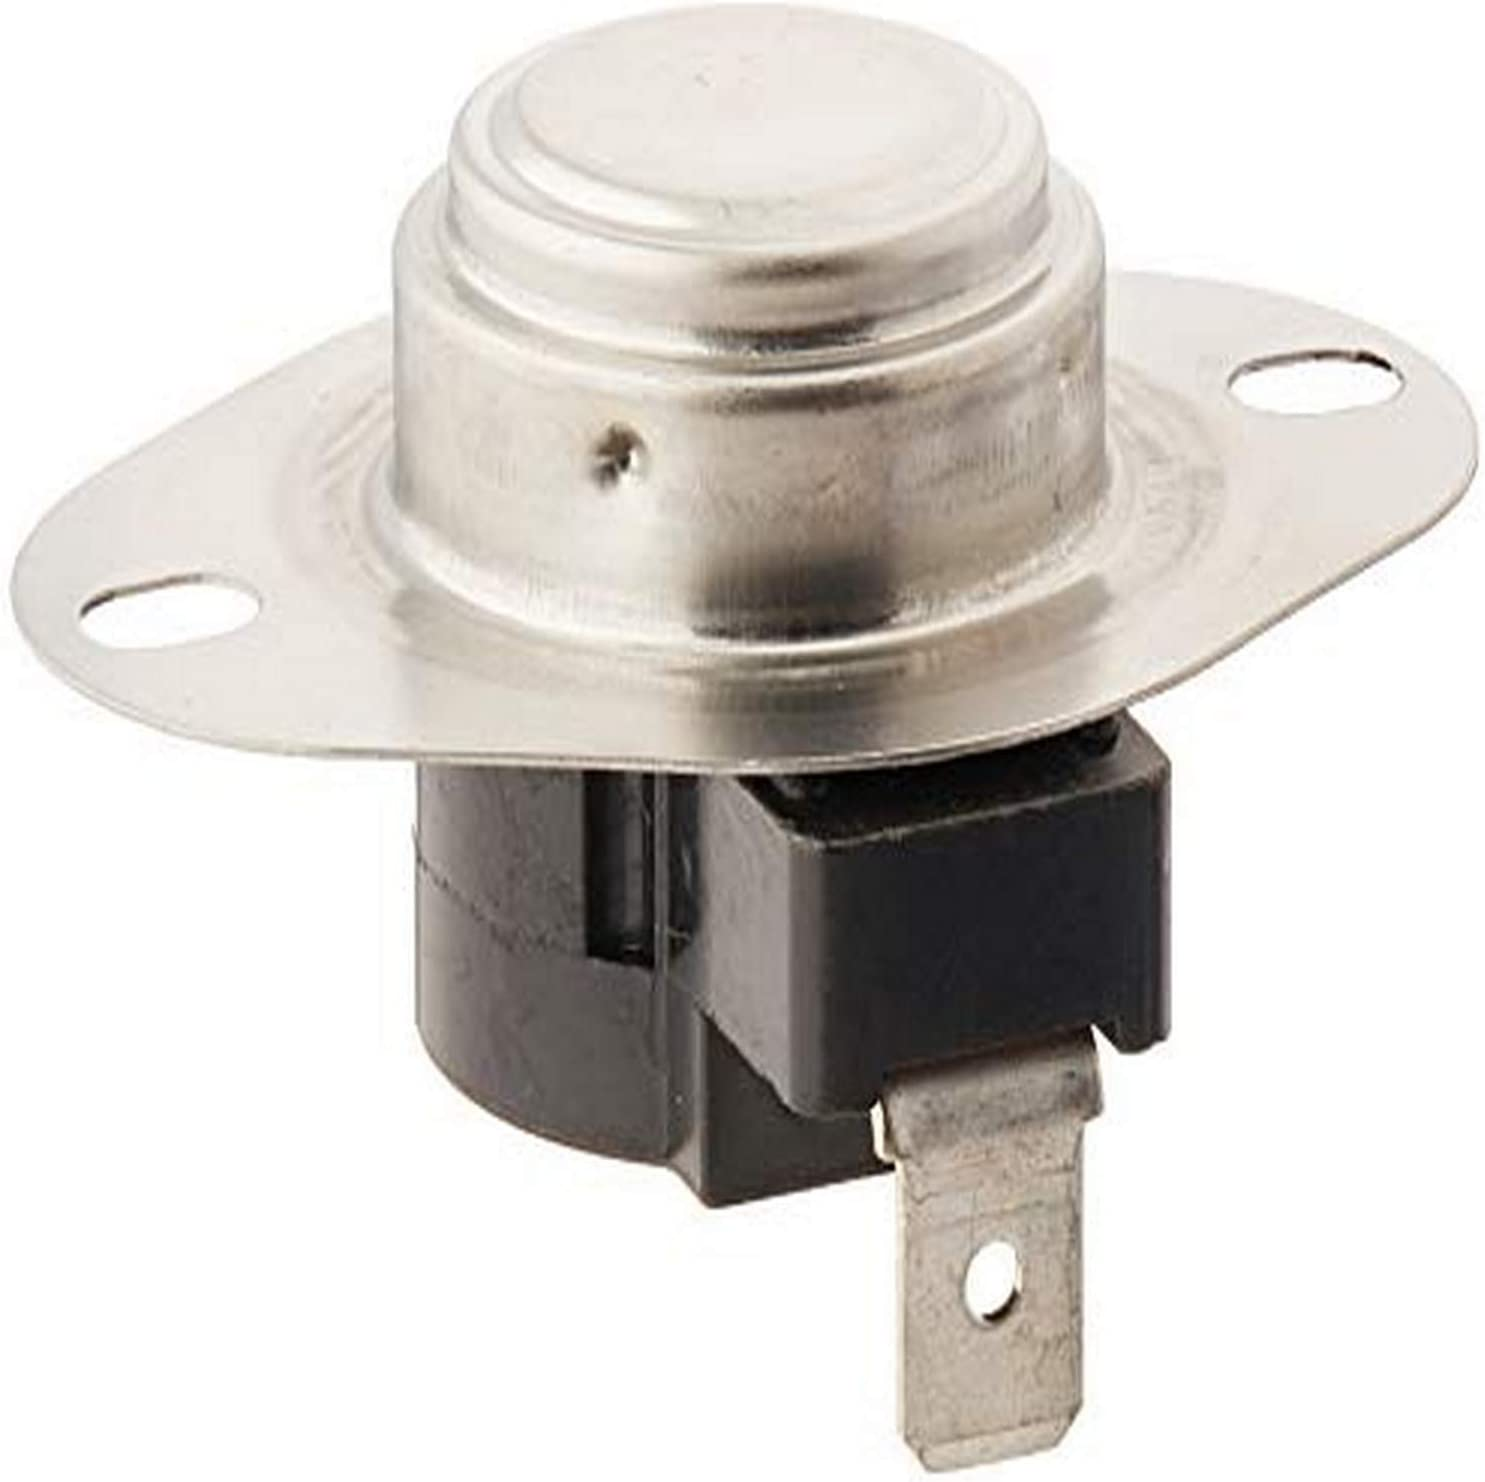 Emerson Thermostats Emerson 3L01-300 Snap Disc Limit Control White-Rodgers